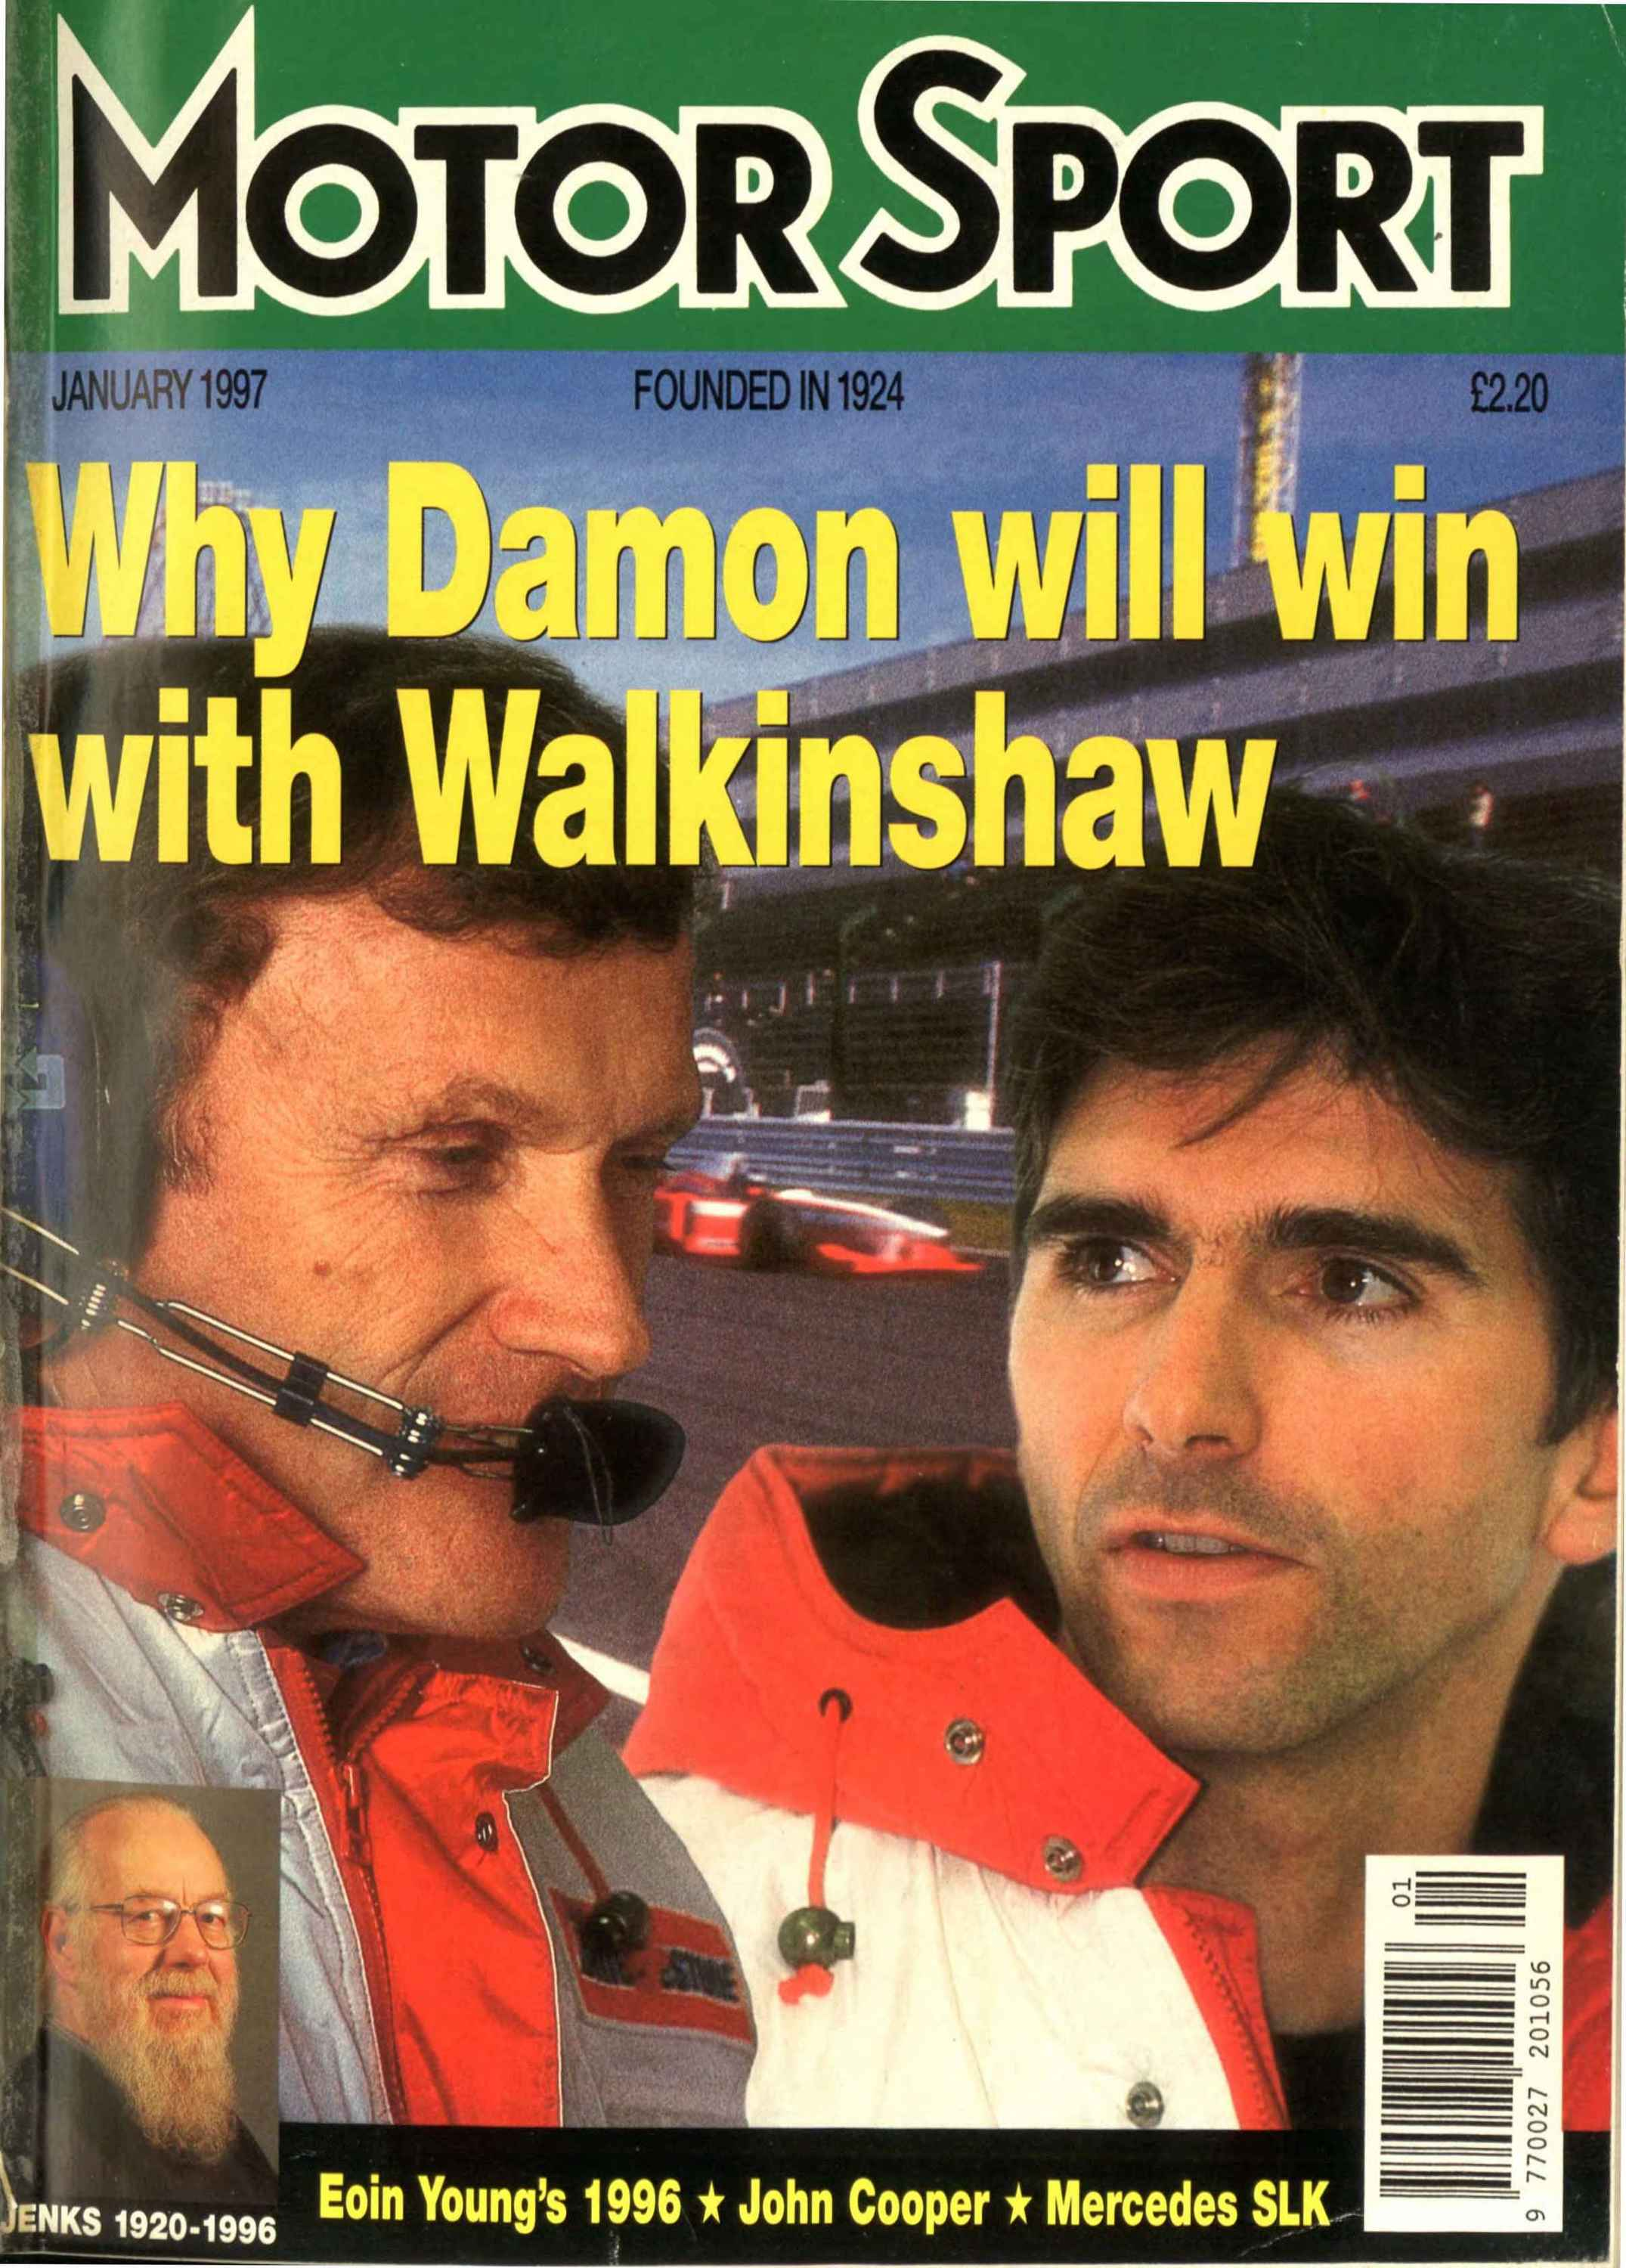 Cover image for January 1997